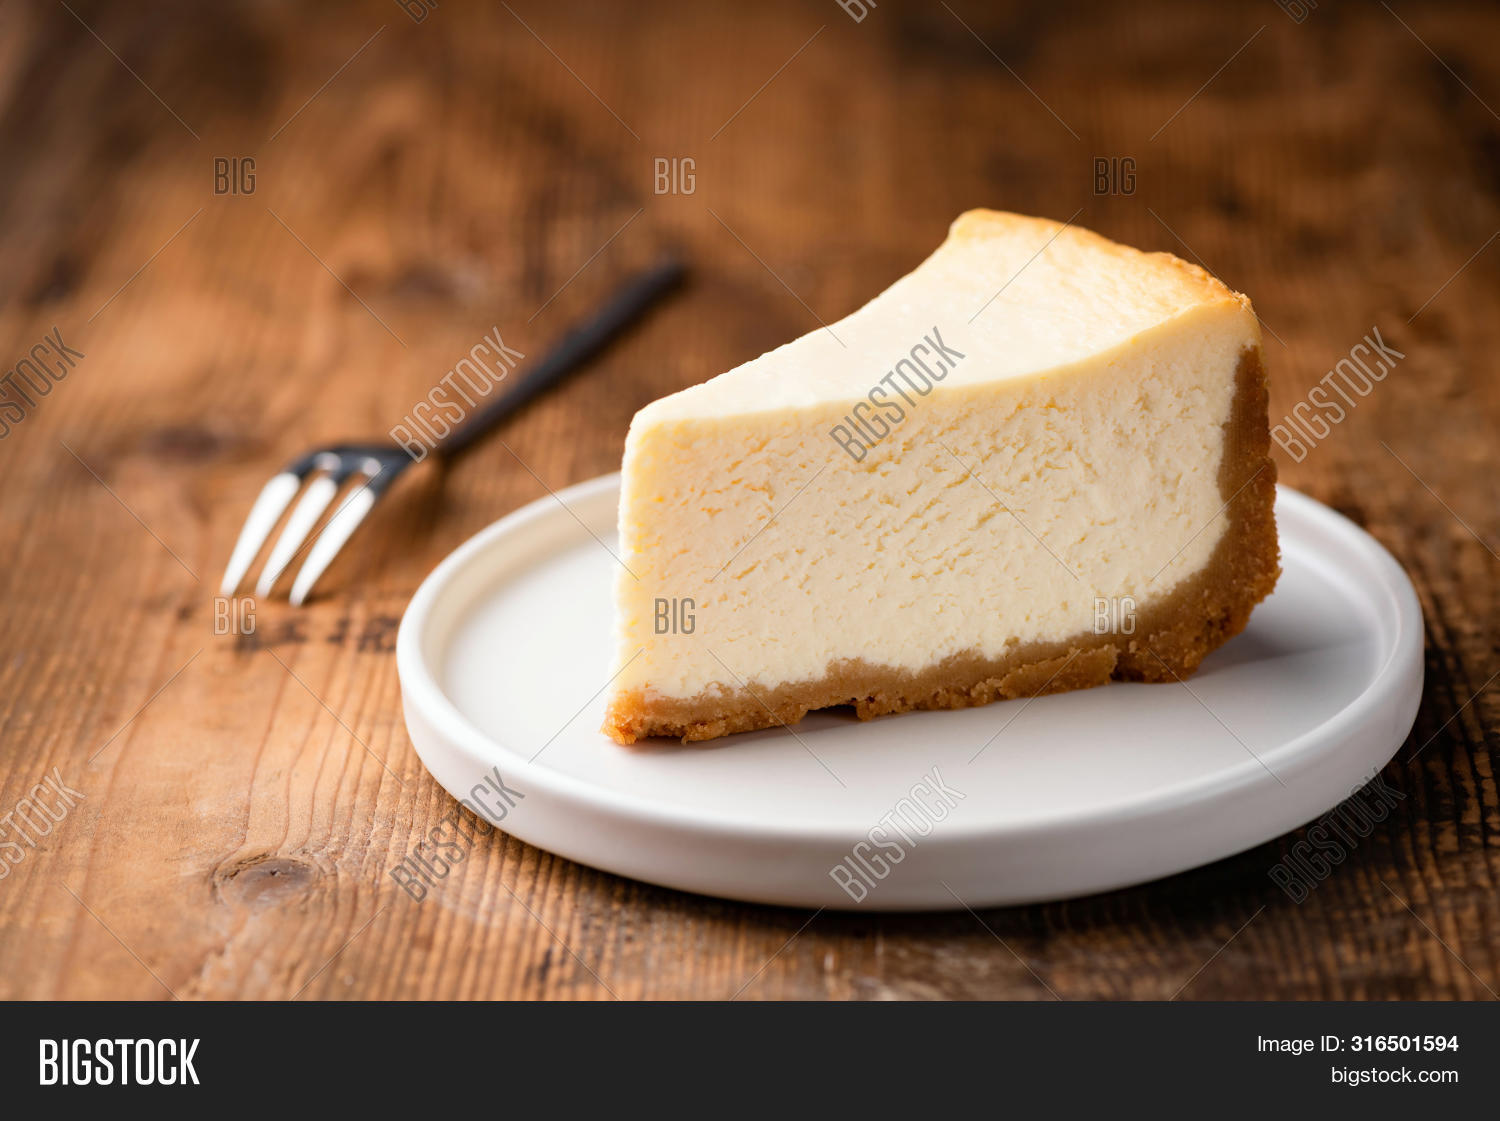 Cheesecake Slice, New York Style Classical Cheese Cake On Wooden Background. Slice Of Tasty Cake On